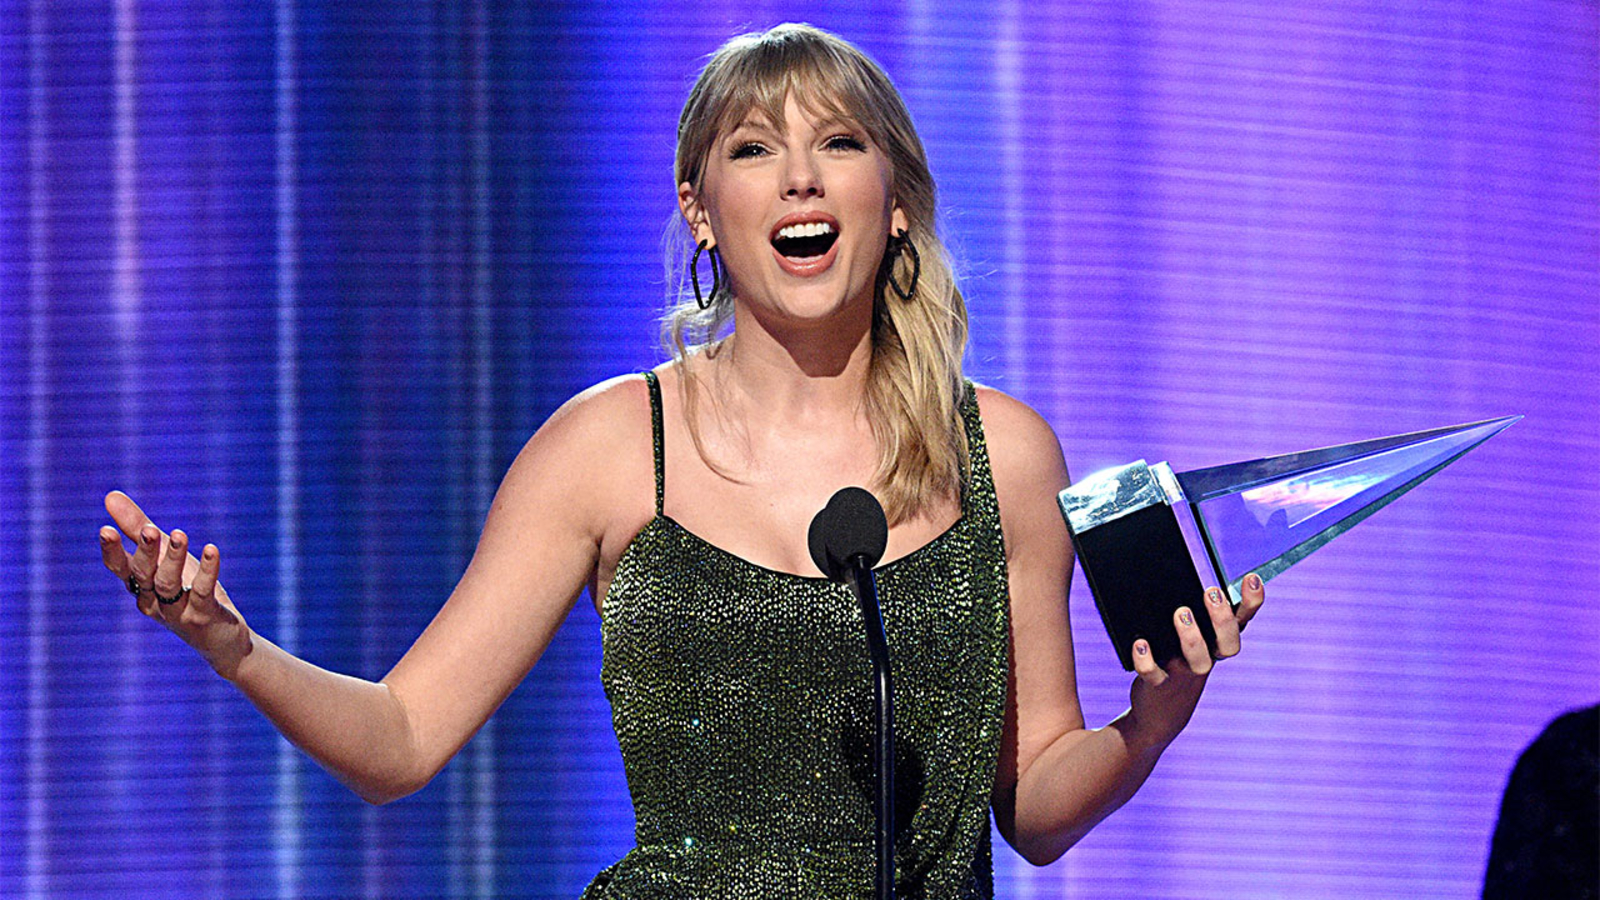 Taylor Swift American Music Awards 2019 Artist Could Make History With Two Wins Abc13 Houston